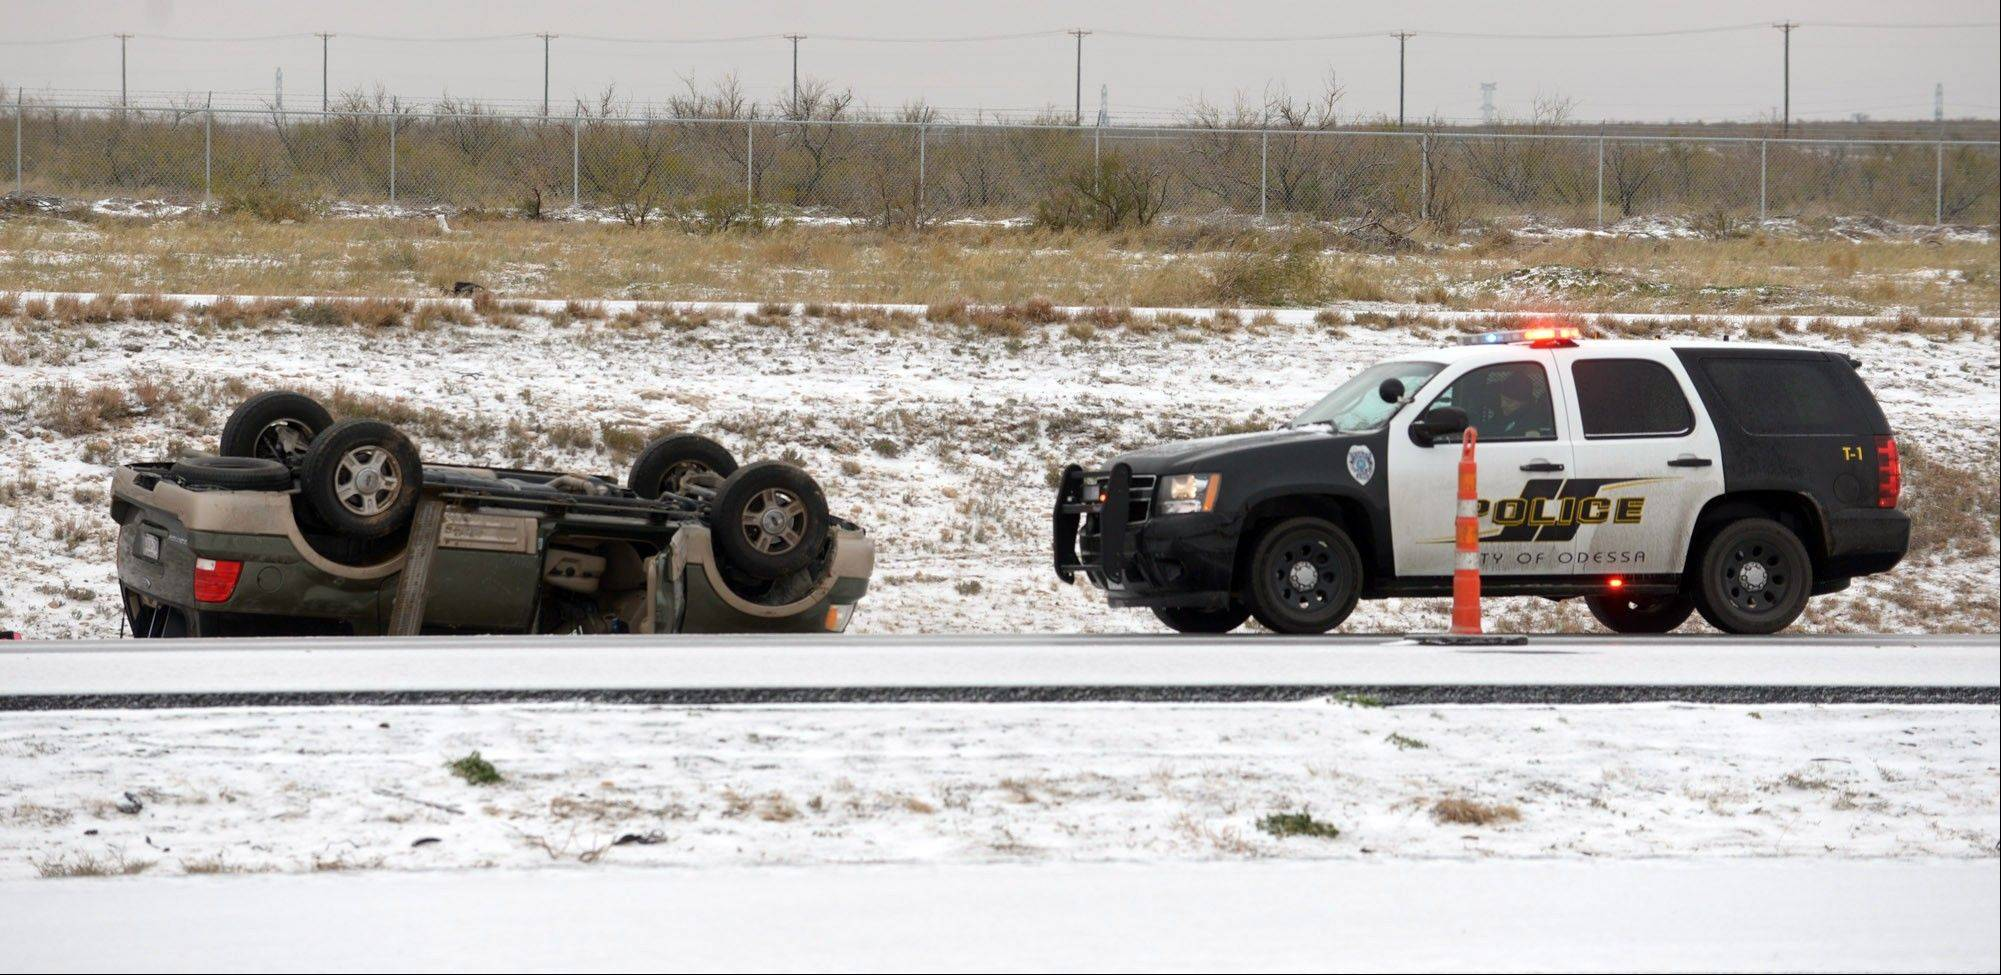 Police respond to a rolled over vehicle that crashed on the slick eastbound lanes of Interstate 20 near Odessa, Texas, Friday morning.